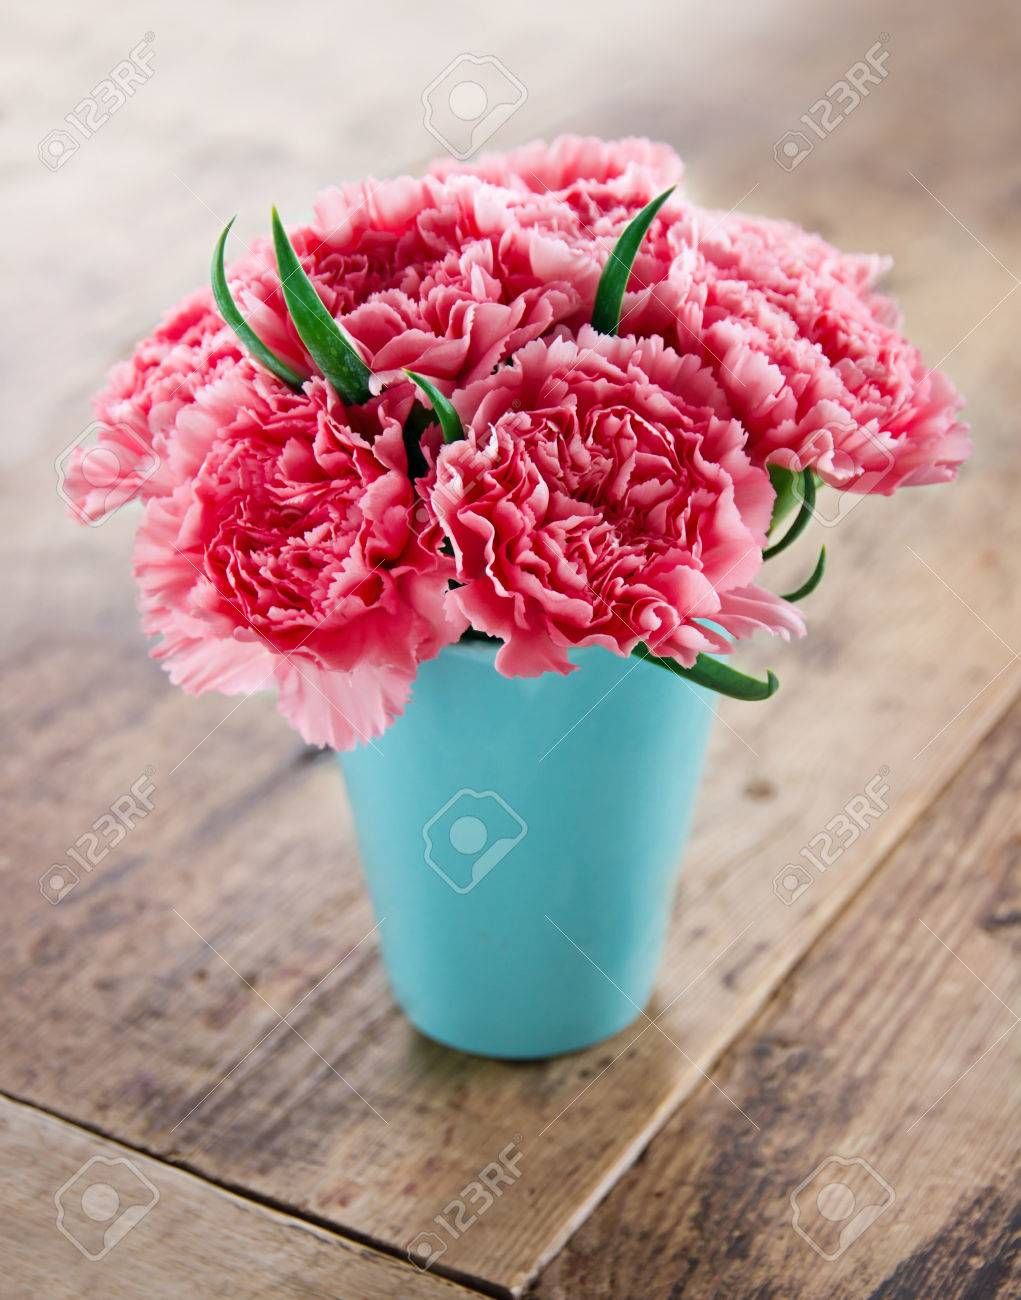 Pink Carnations Flower Bouquet In A Blue Vase On Rustic Wooden ...